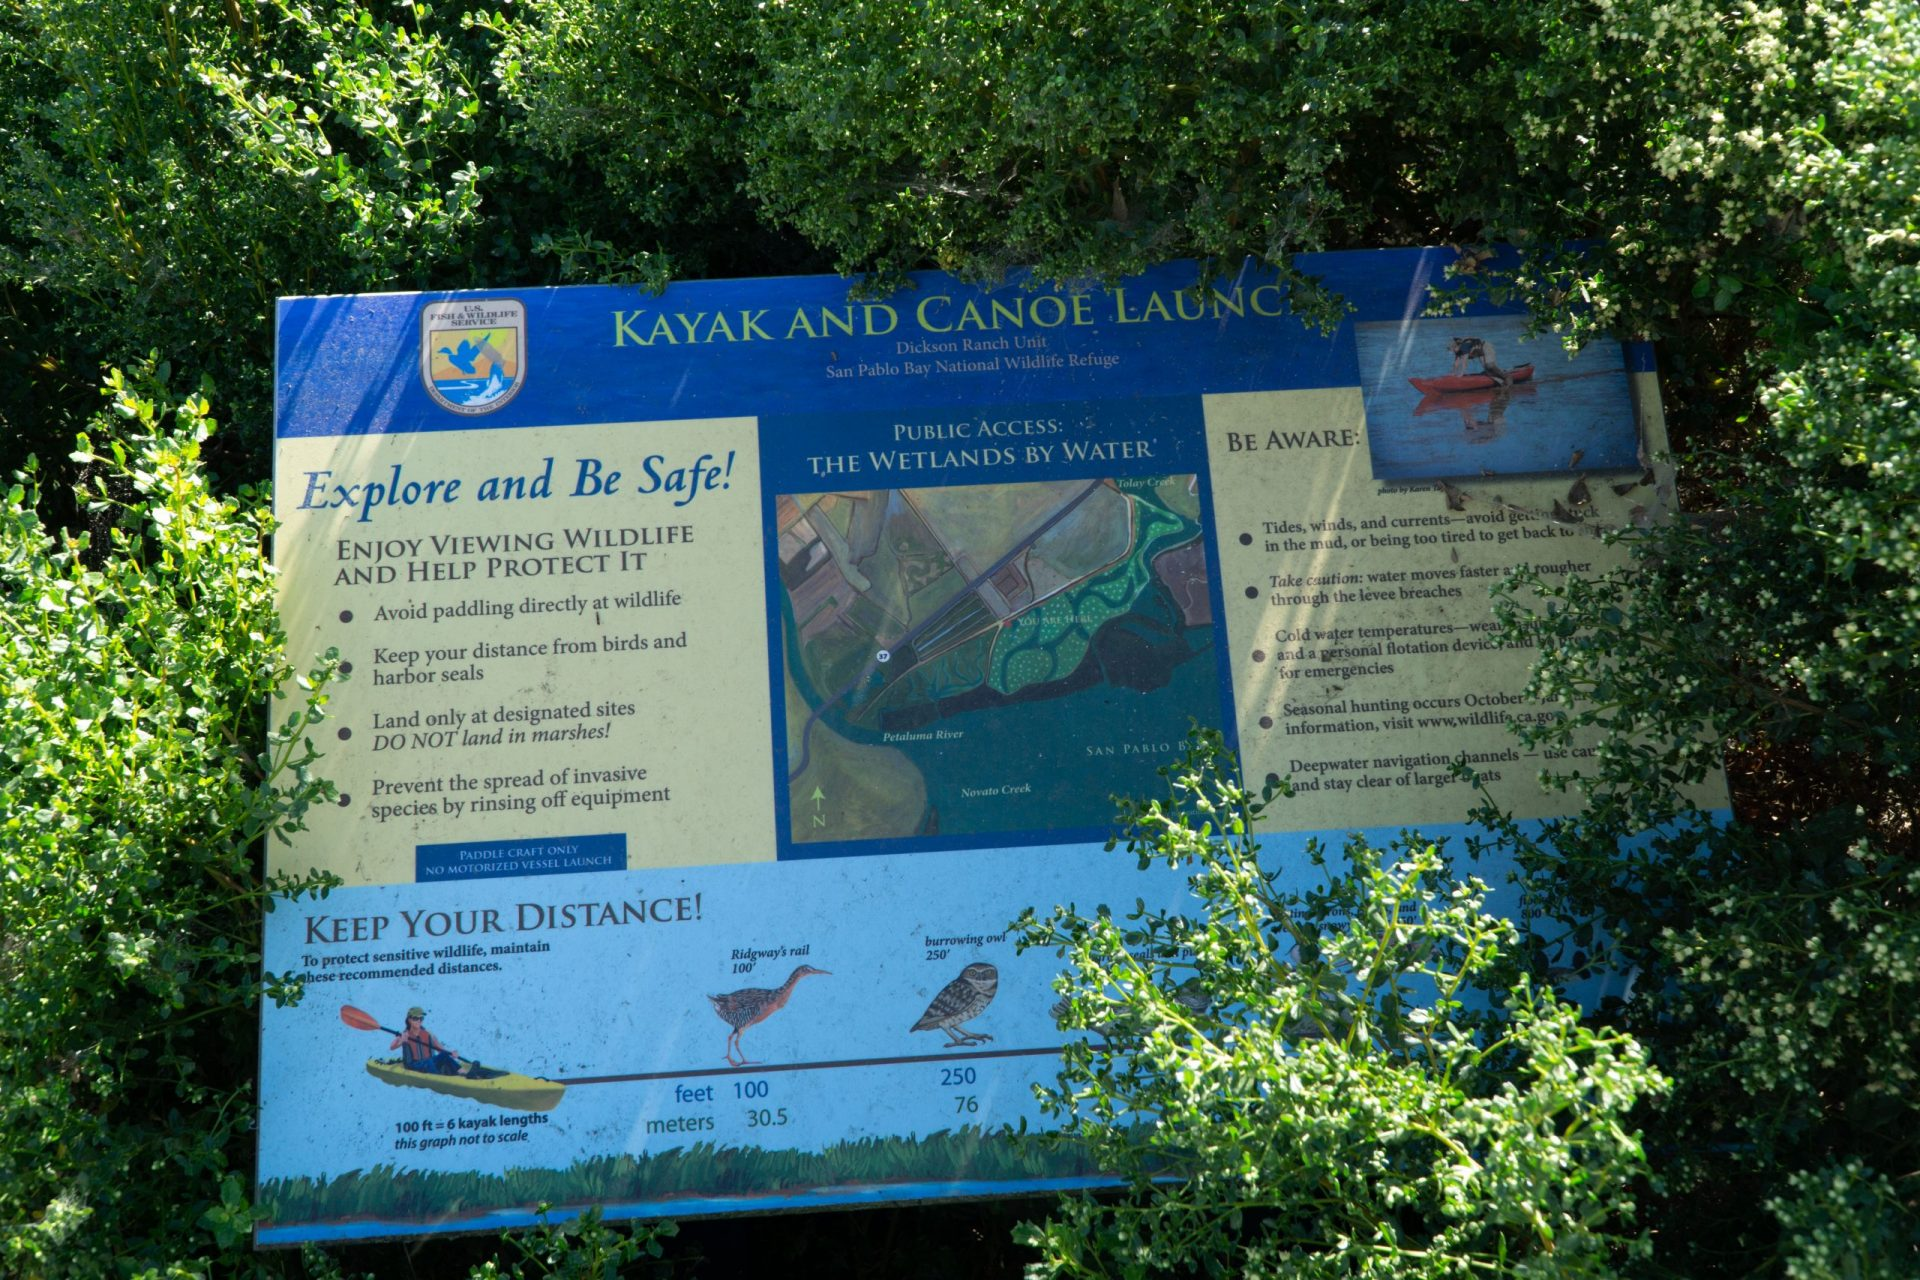 interpretive panel about safe kayaking and canoeing